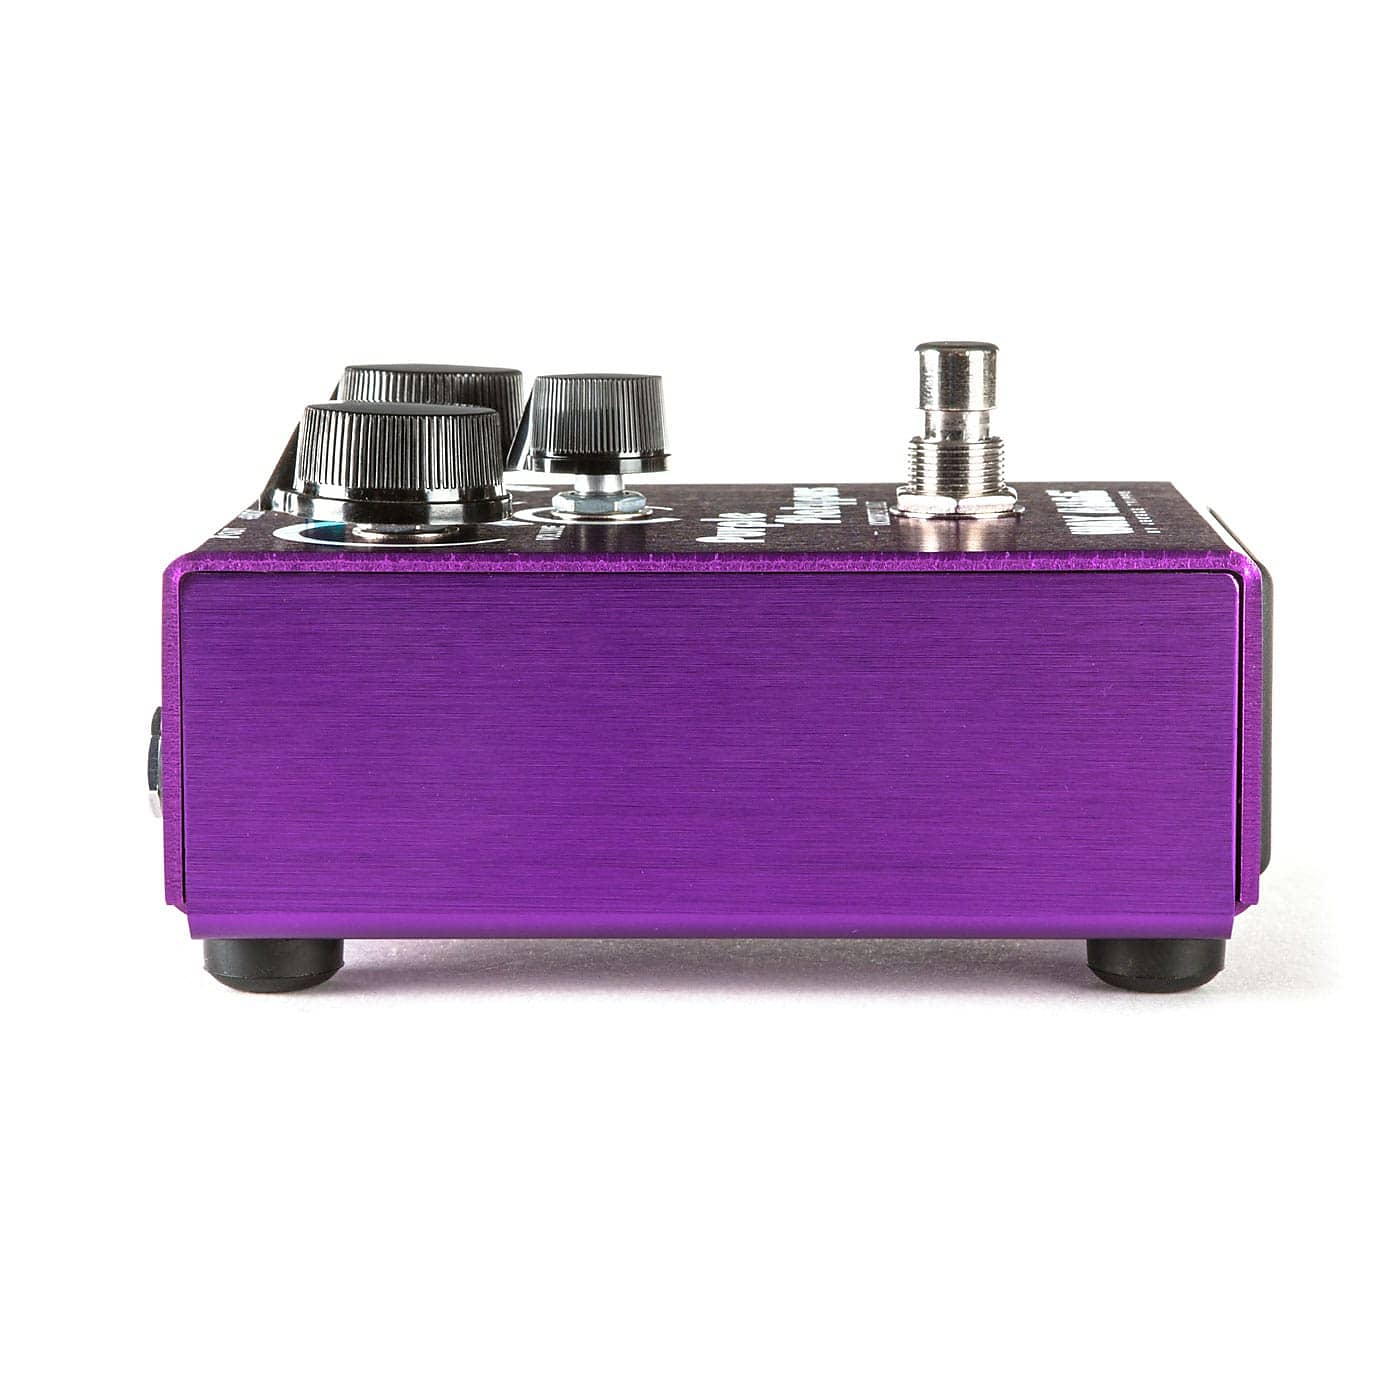 New Way Huge Whe 800 Purple Platypus Octidrive Mkii Pedal A Frequency Doubler Effect For Electric Guitar 14999